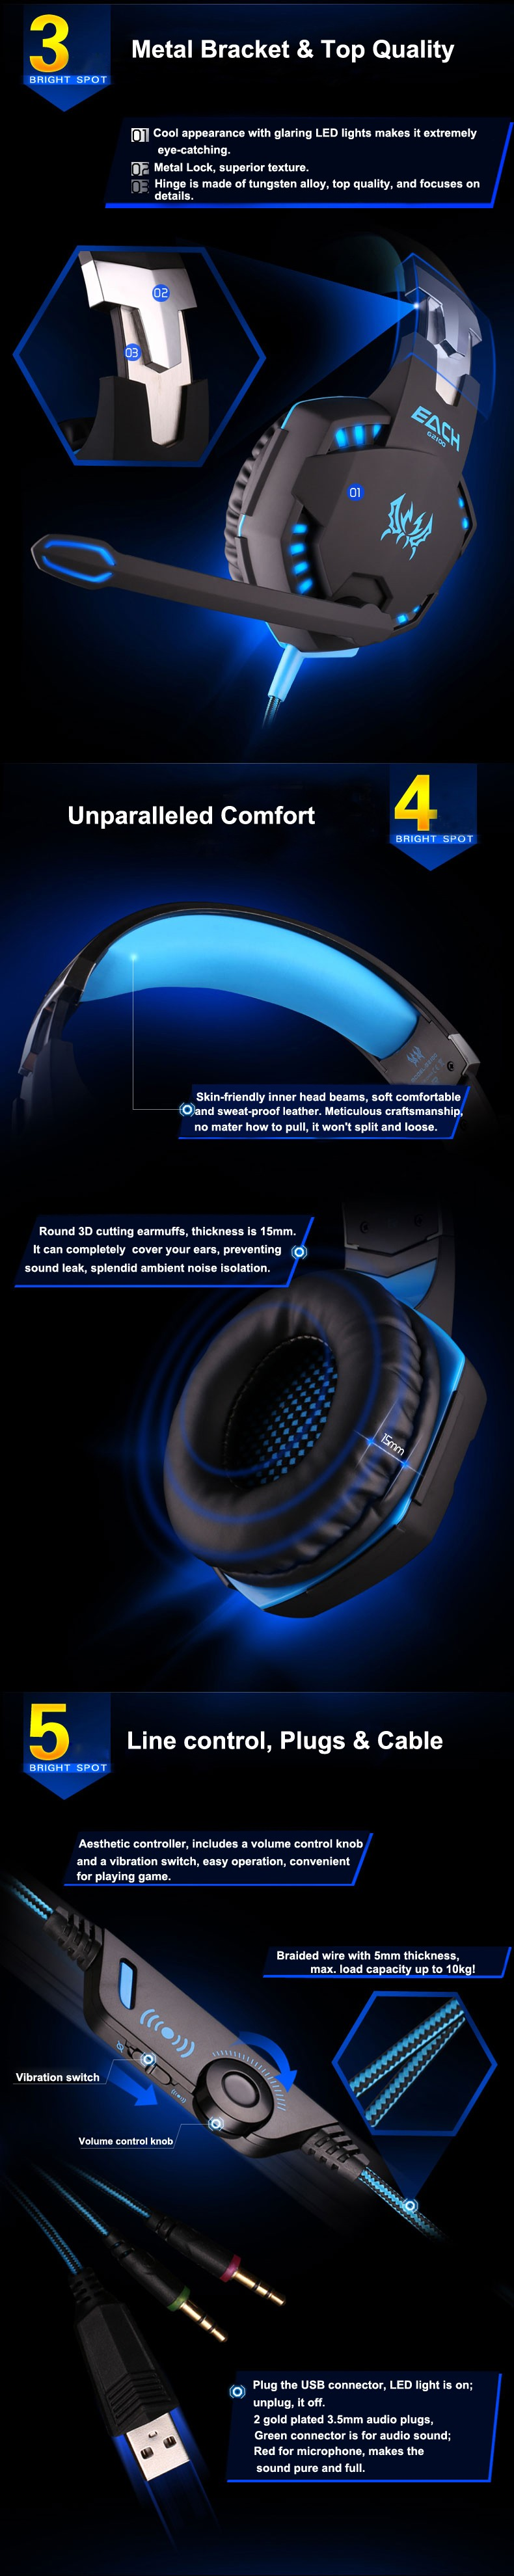 Each G2100 Gaming Headset Auriculares for PC Hamer with Vibration Function Mic/Microphone Headphones Luminous